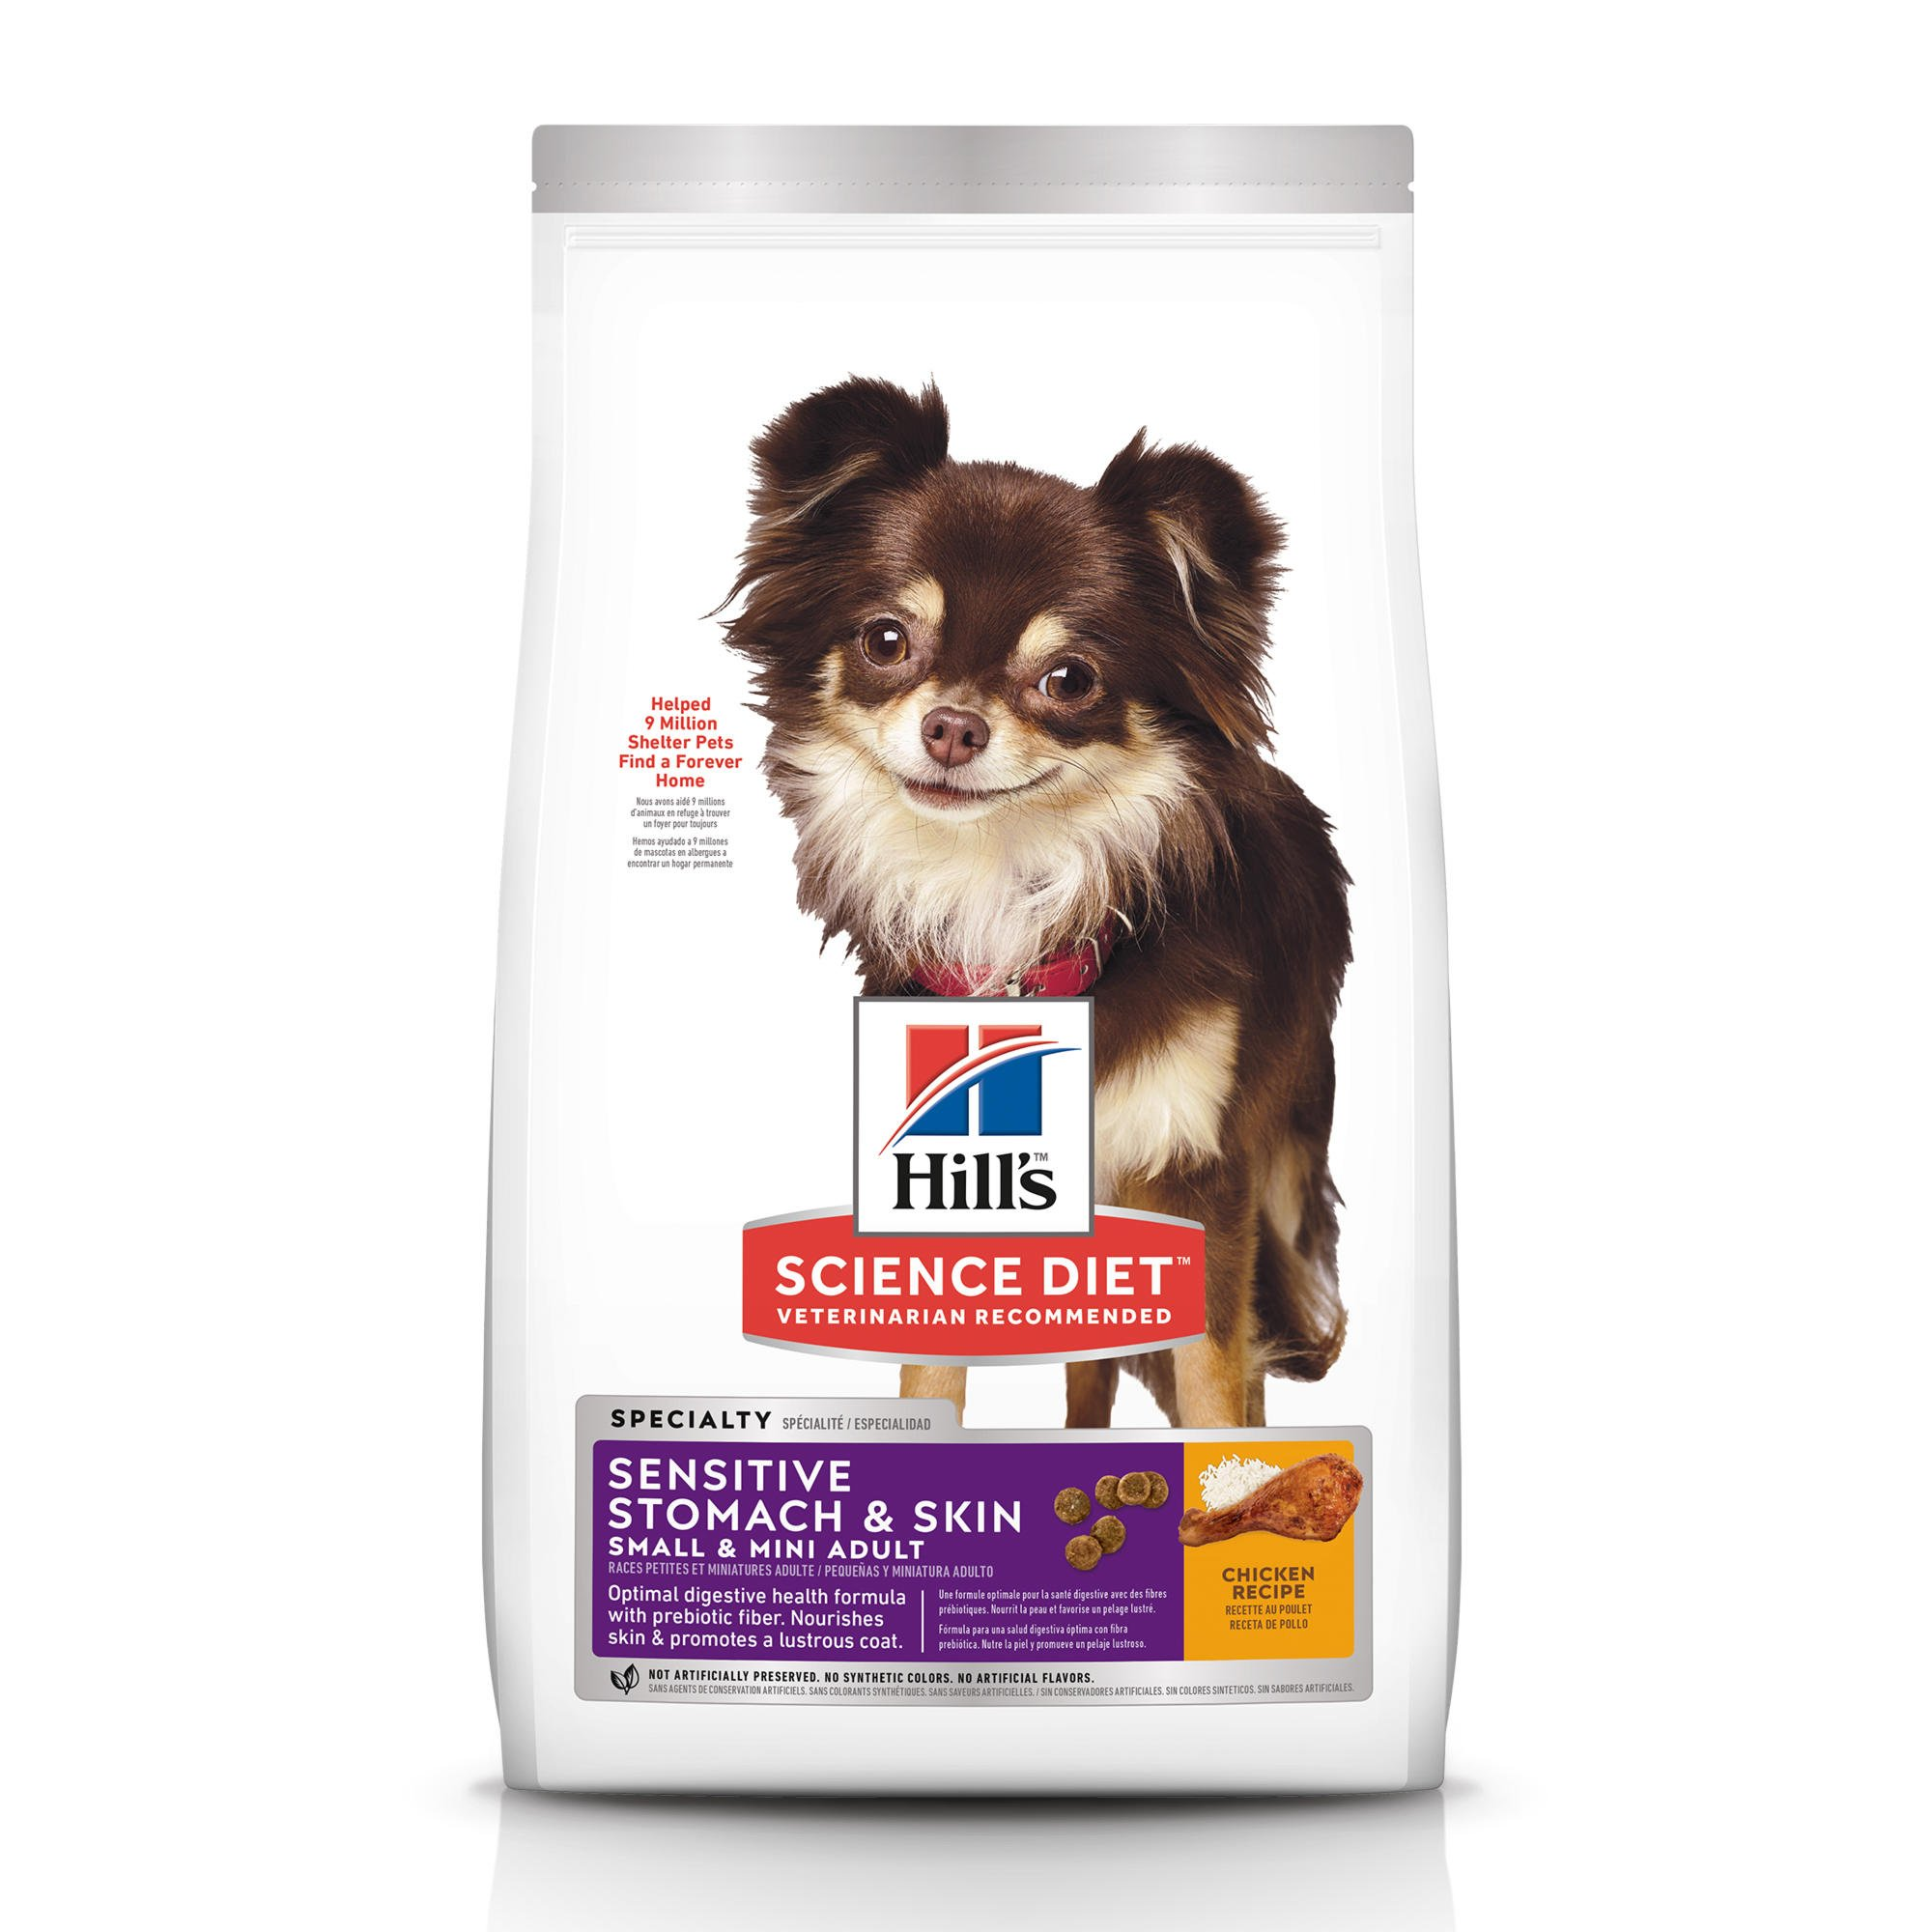 Hill's Science Diet Adult Sensitive Stomach & Skin Small & Mini Chicken Recipe Dry Dog Food, 4 lbs.